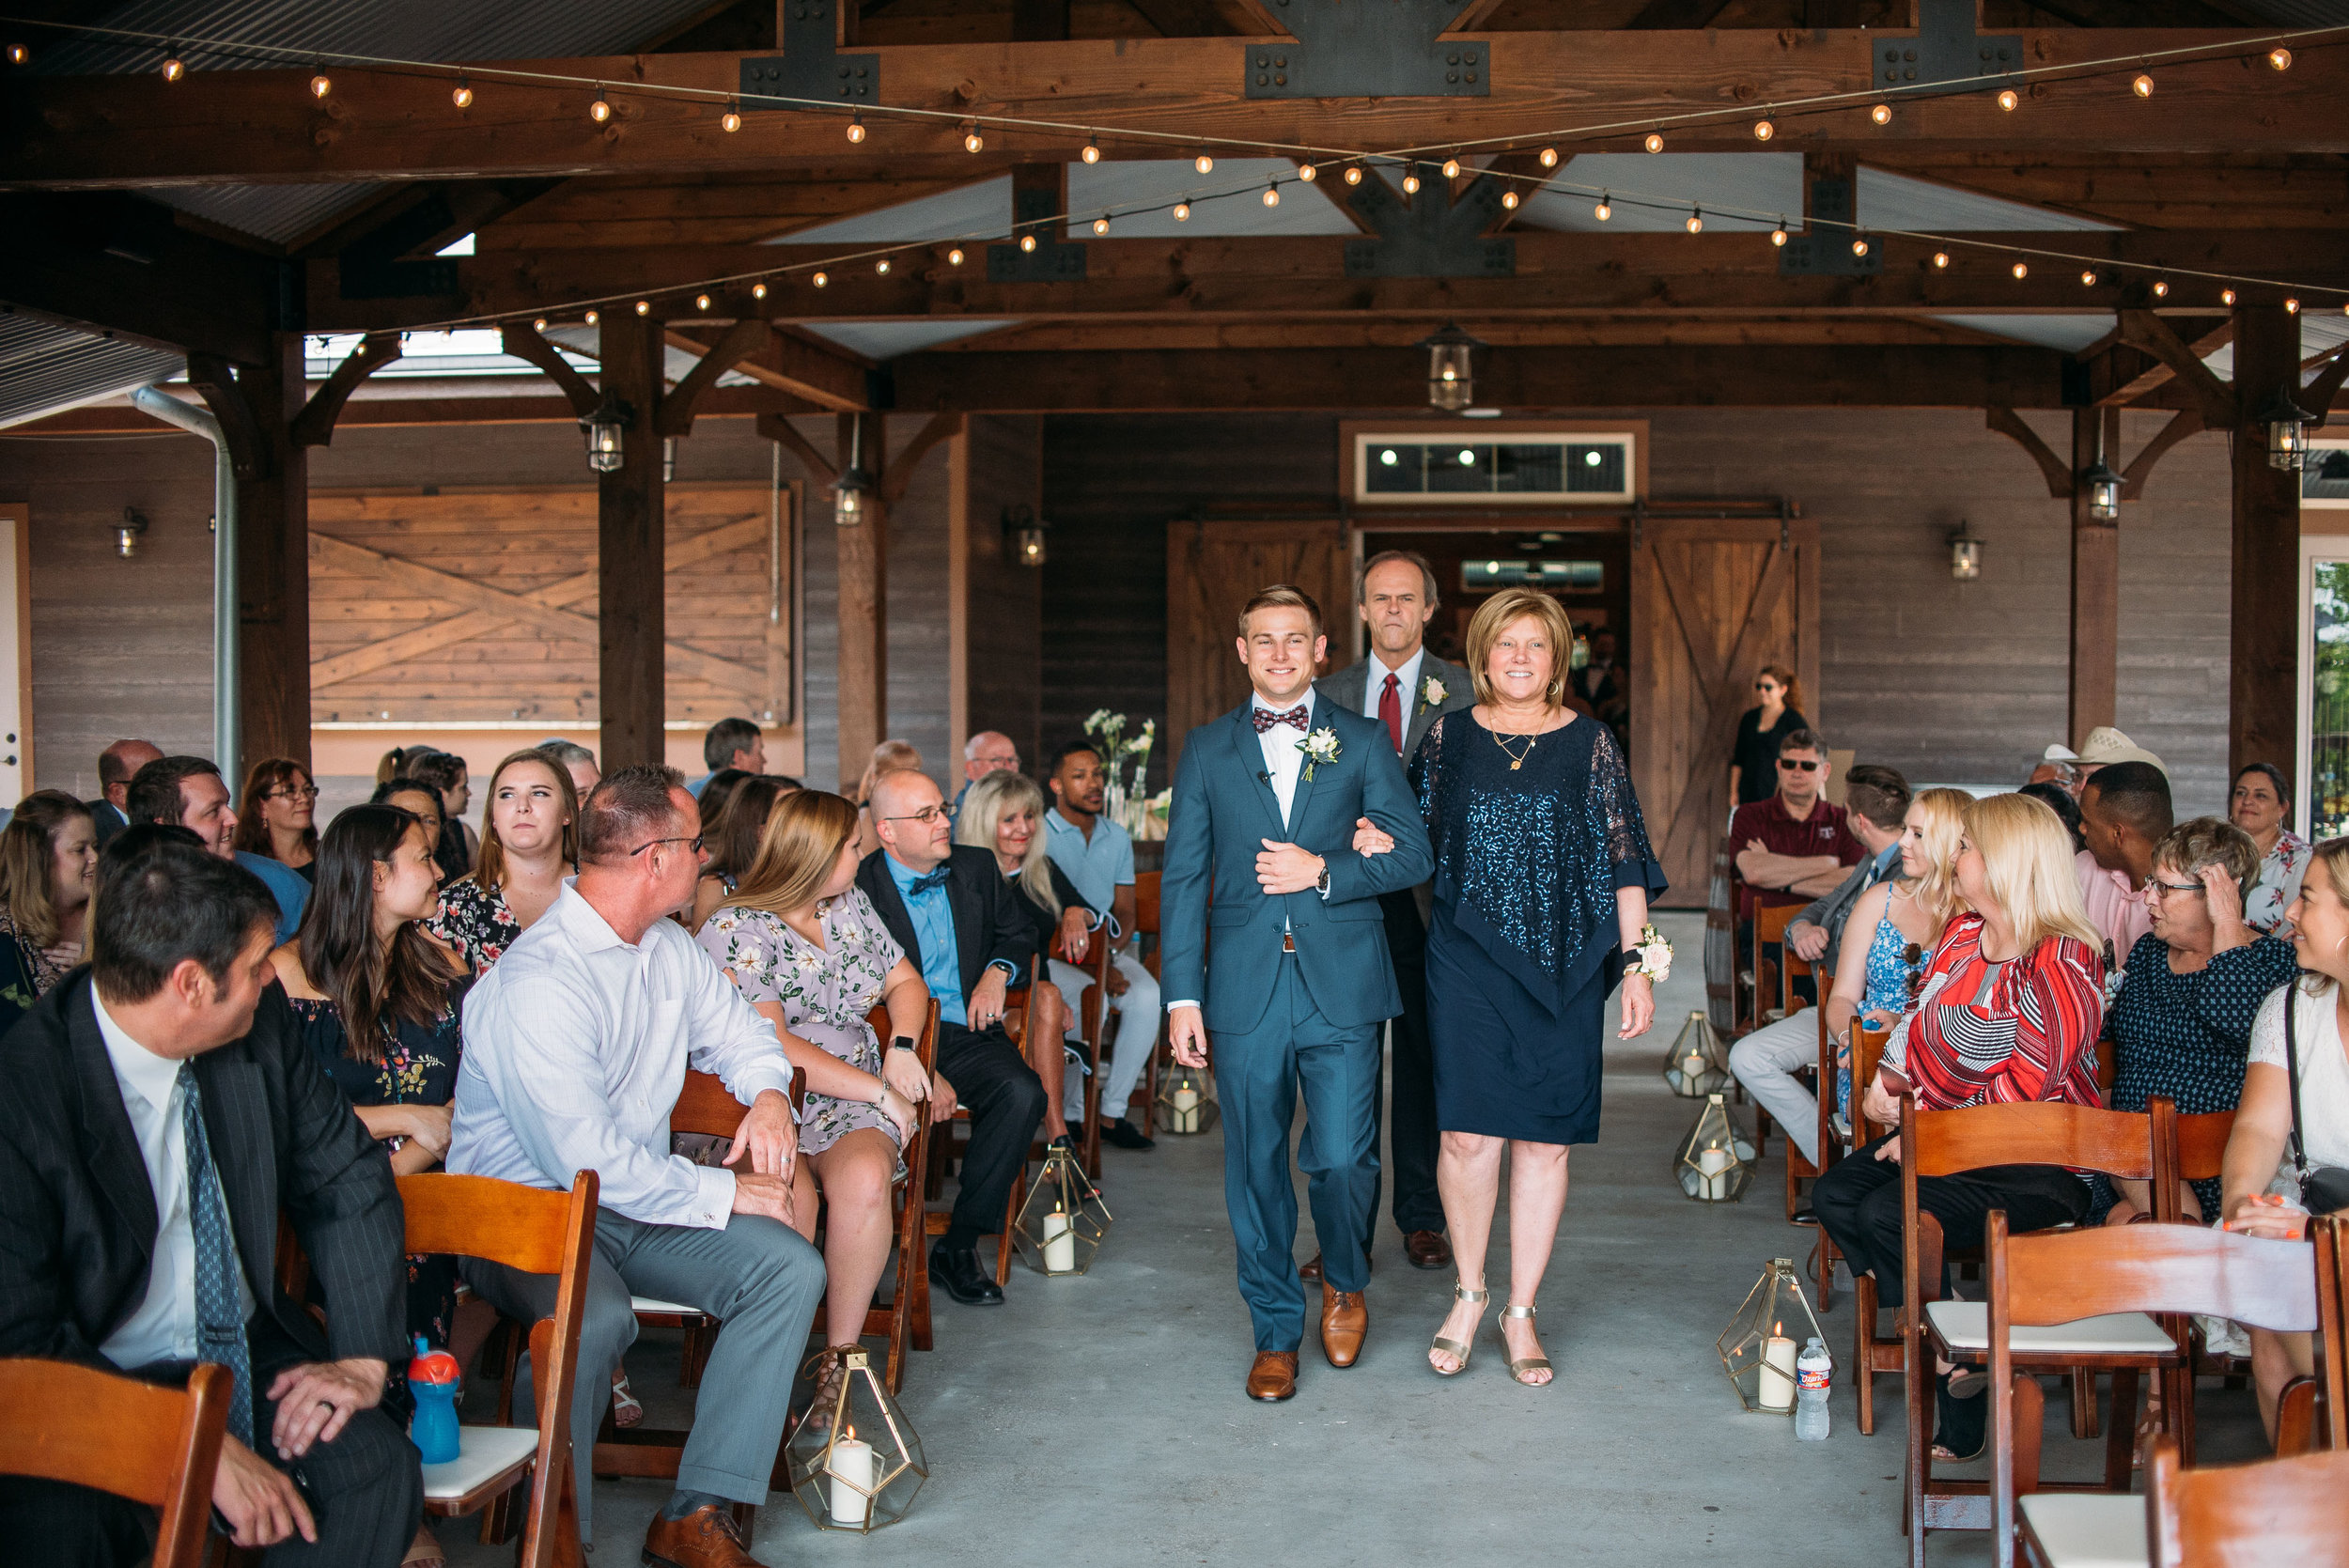 EmilyCody-Peach-Creek-Ranch-Wedding-Ceremony-Bridals-Engagement-College-Station-Photographer-Videographer-San-Angel-Photo-0152.jpg